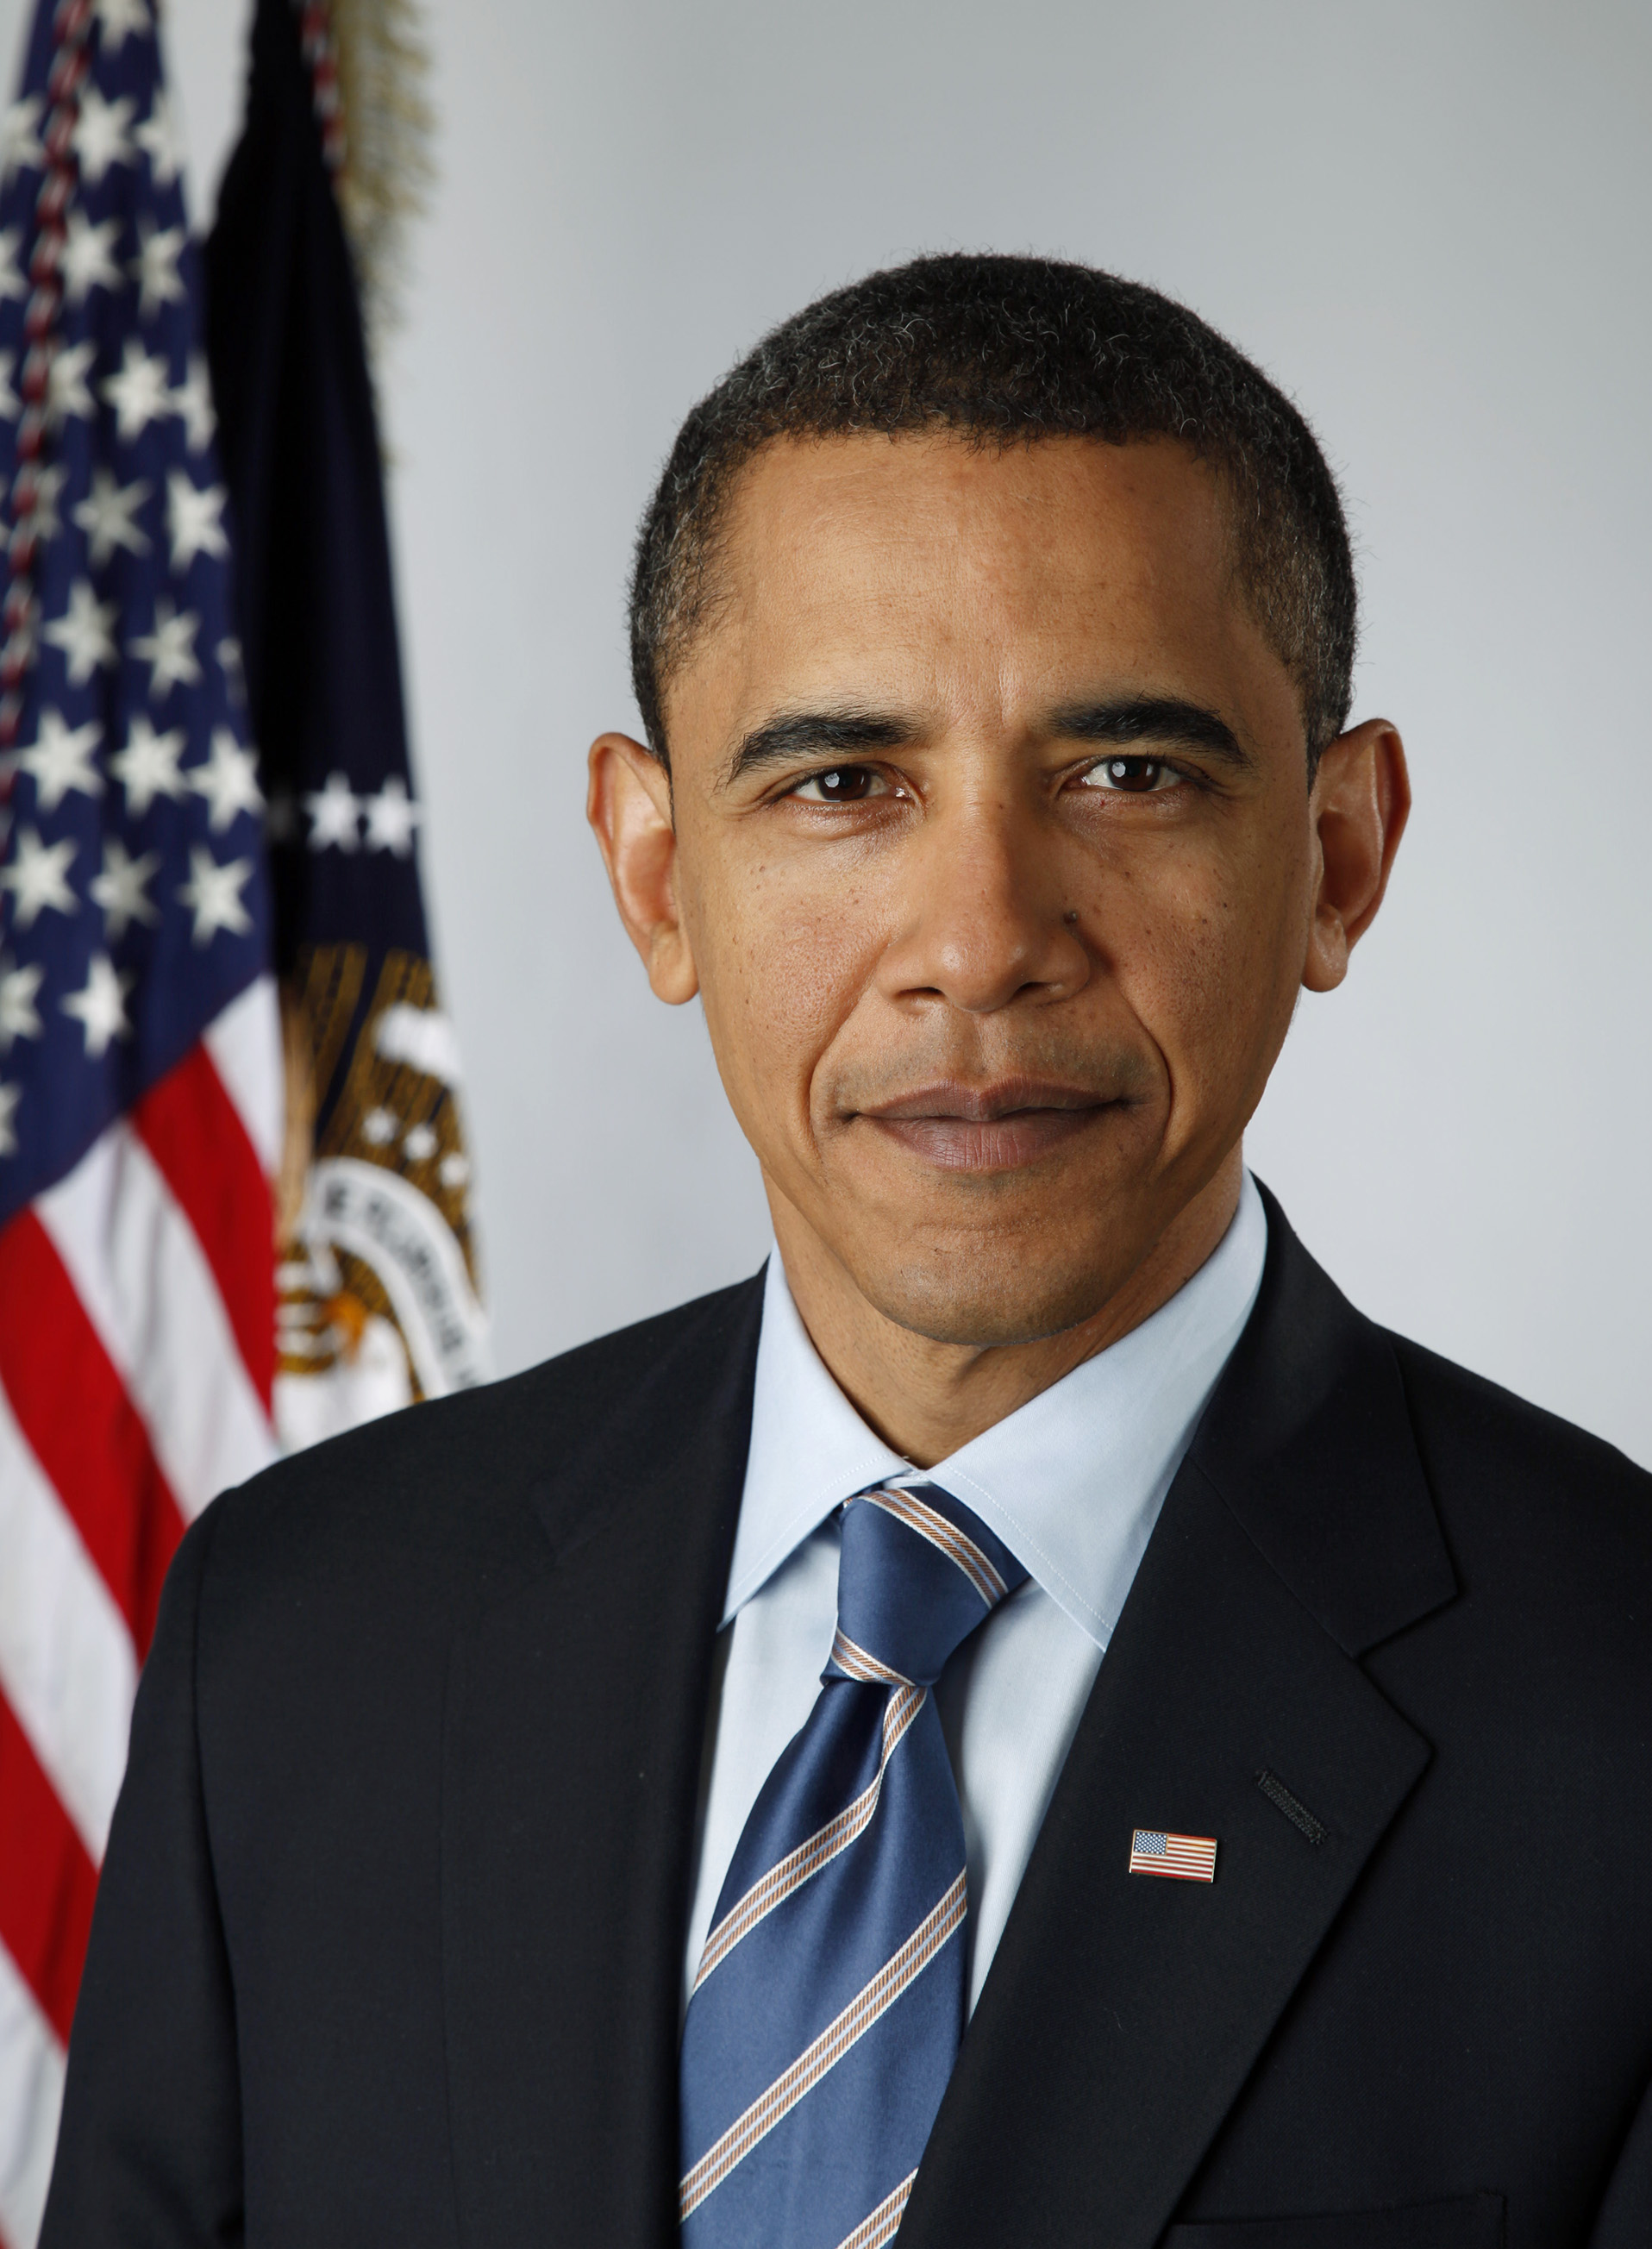 Barack OBAMA - Wikipedia, the free encyclopedia